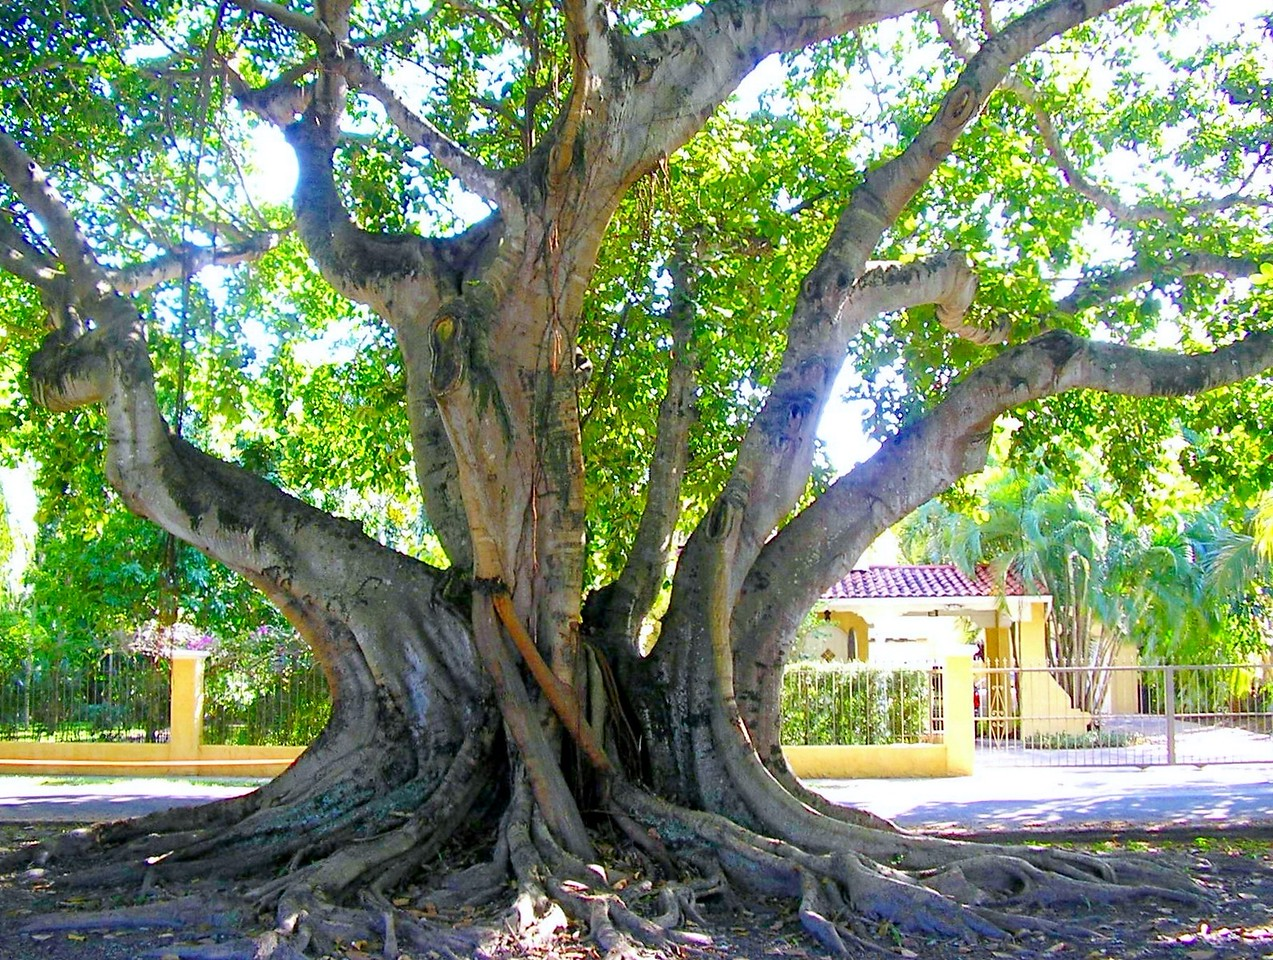 Banyan Tree near Coral Tiled Roof